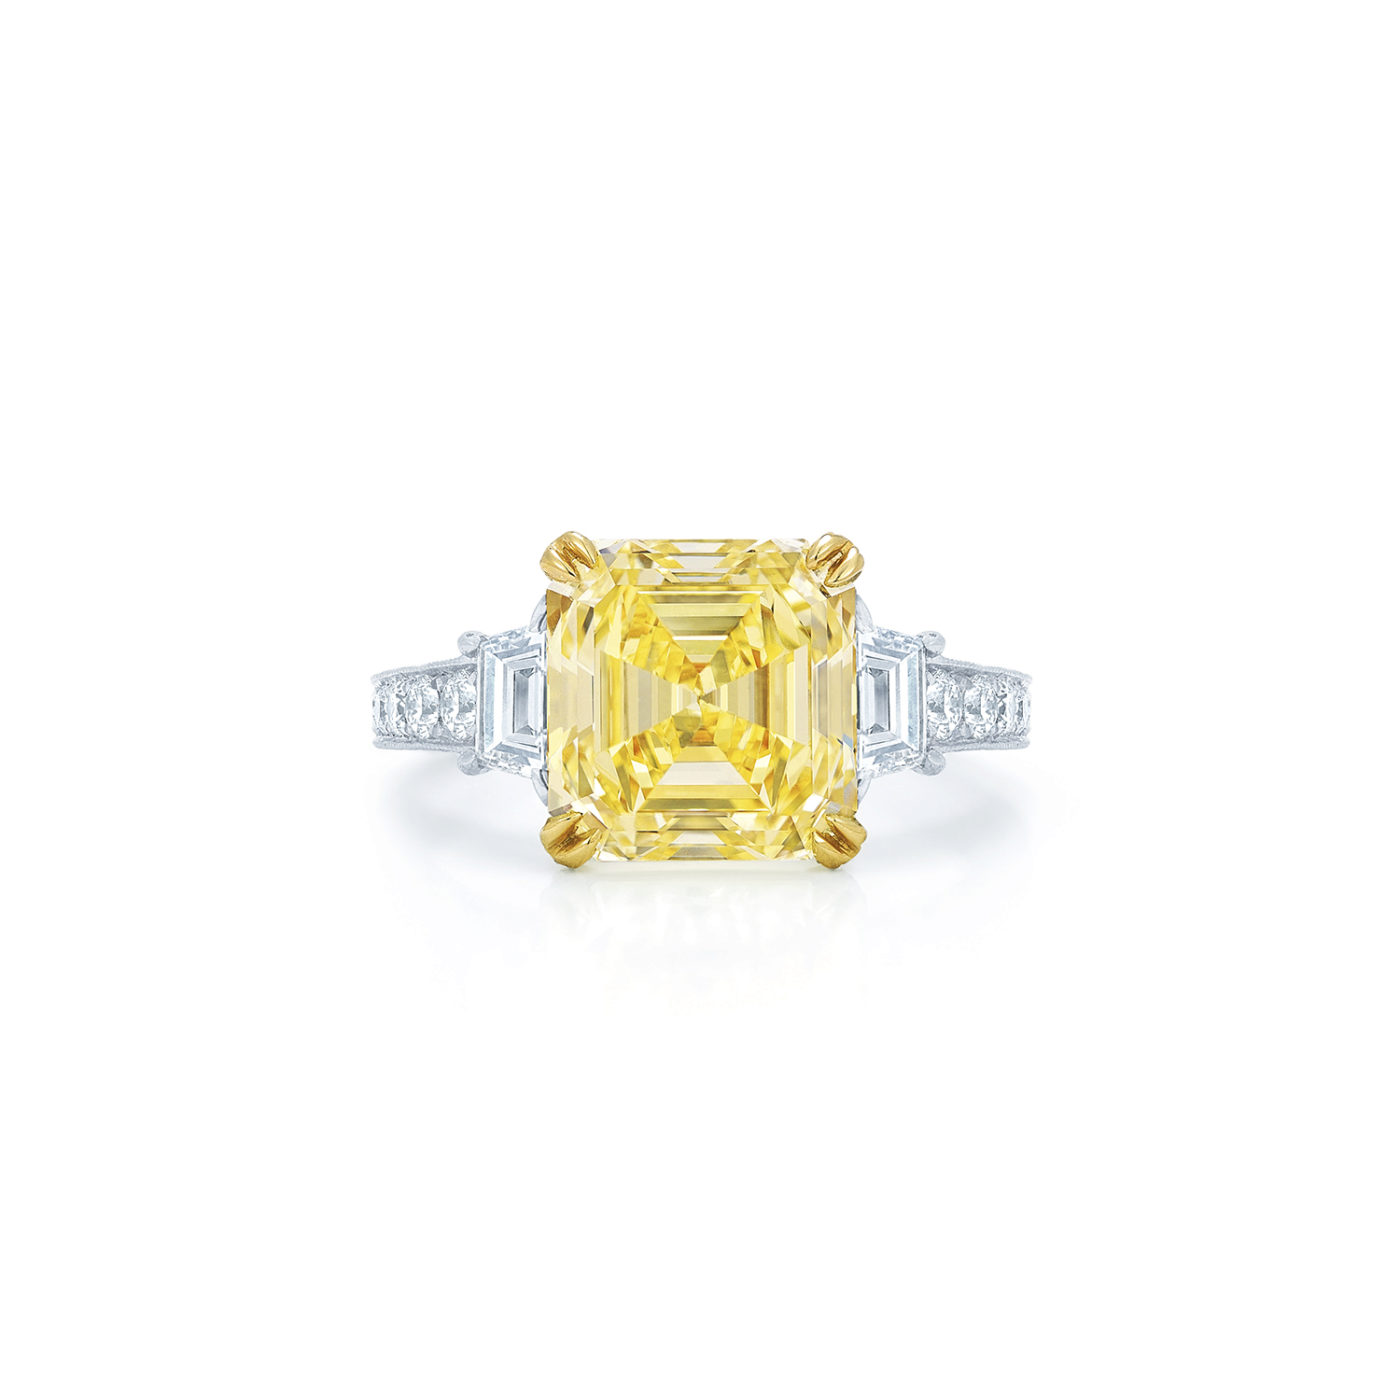 Yellow Asscher Cut Diamond Engagement Ring With Two Trapezoid Side Stones In A Vintage Style In